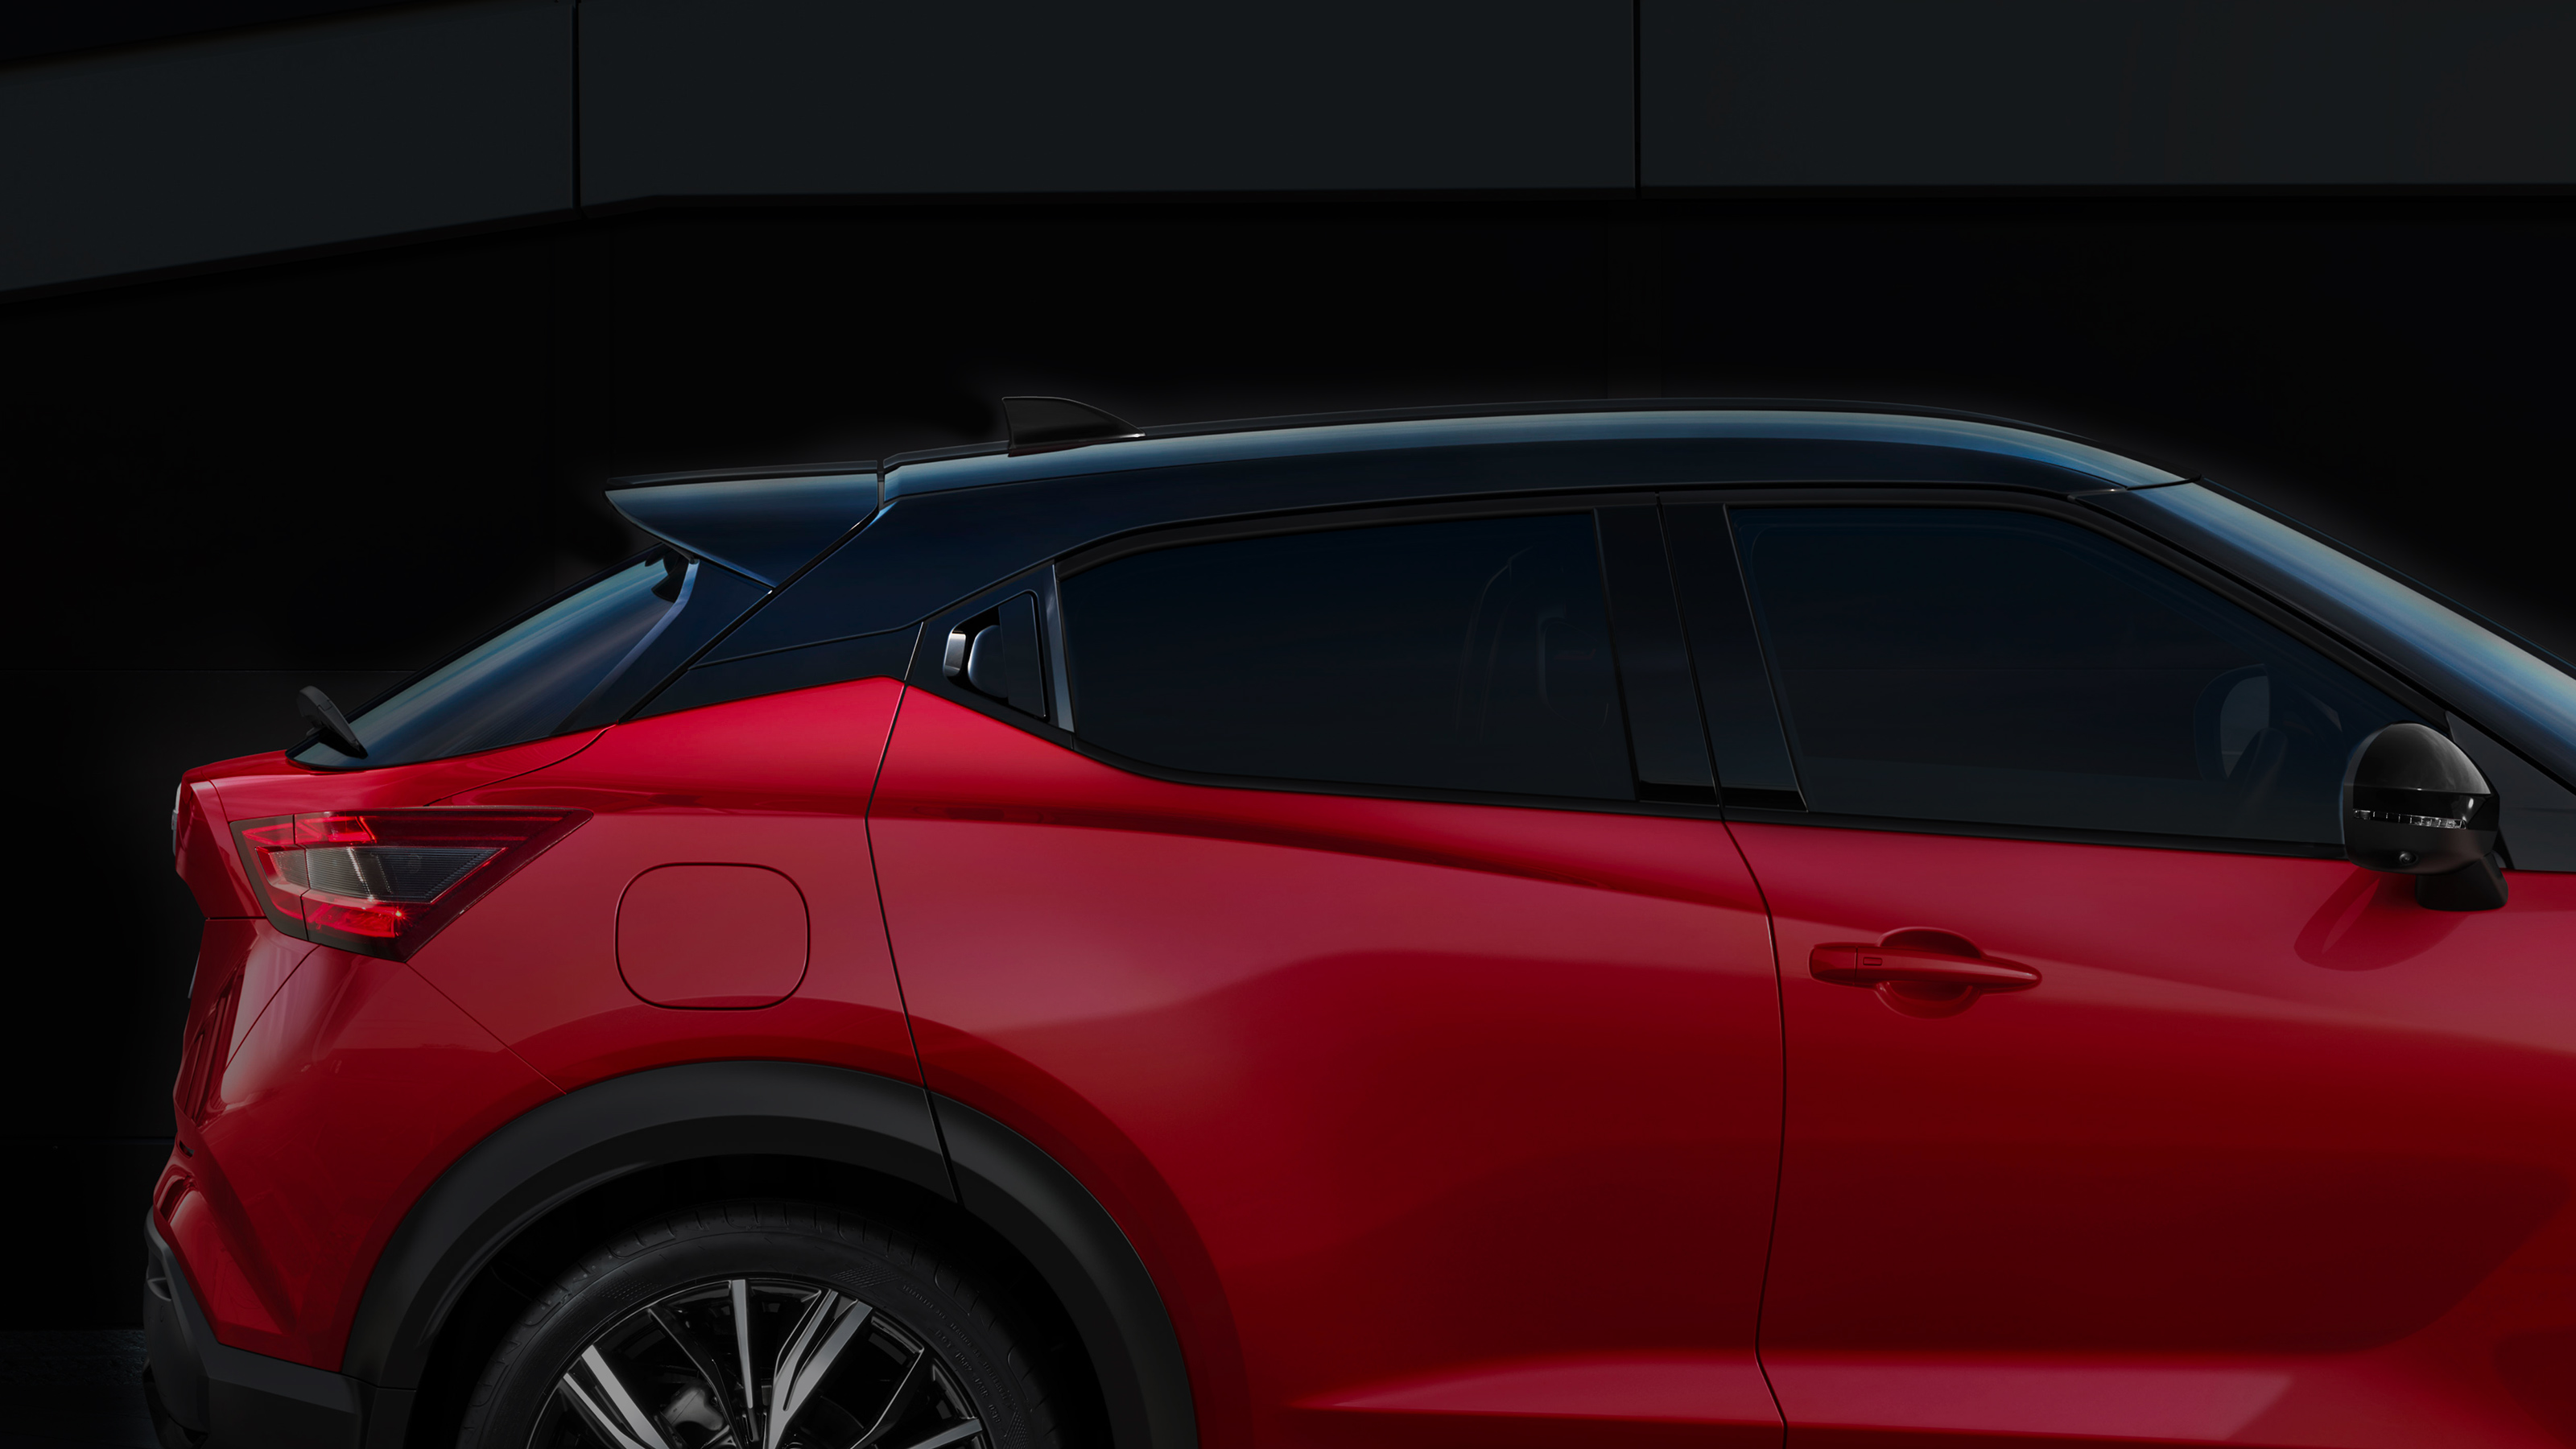 Nissan JUKE profile view of the floating roof